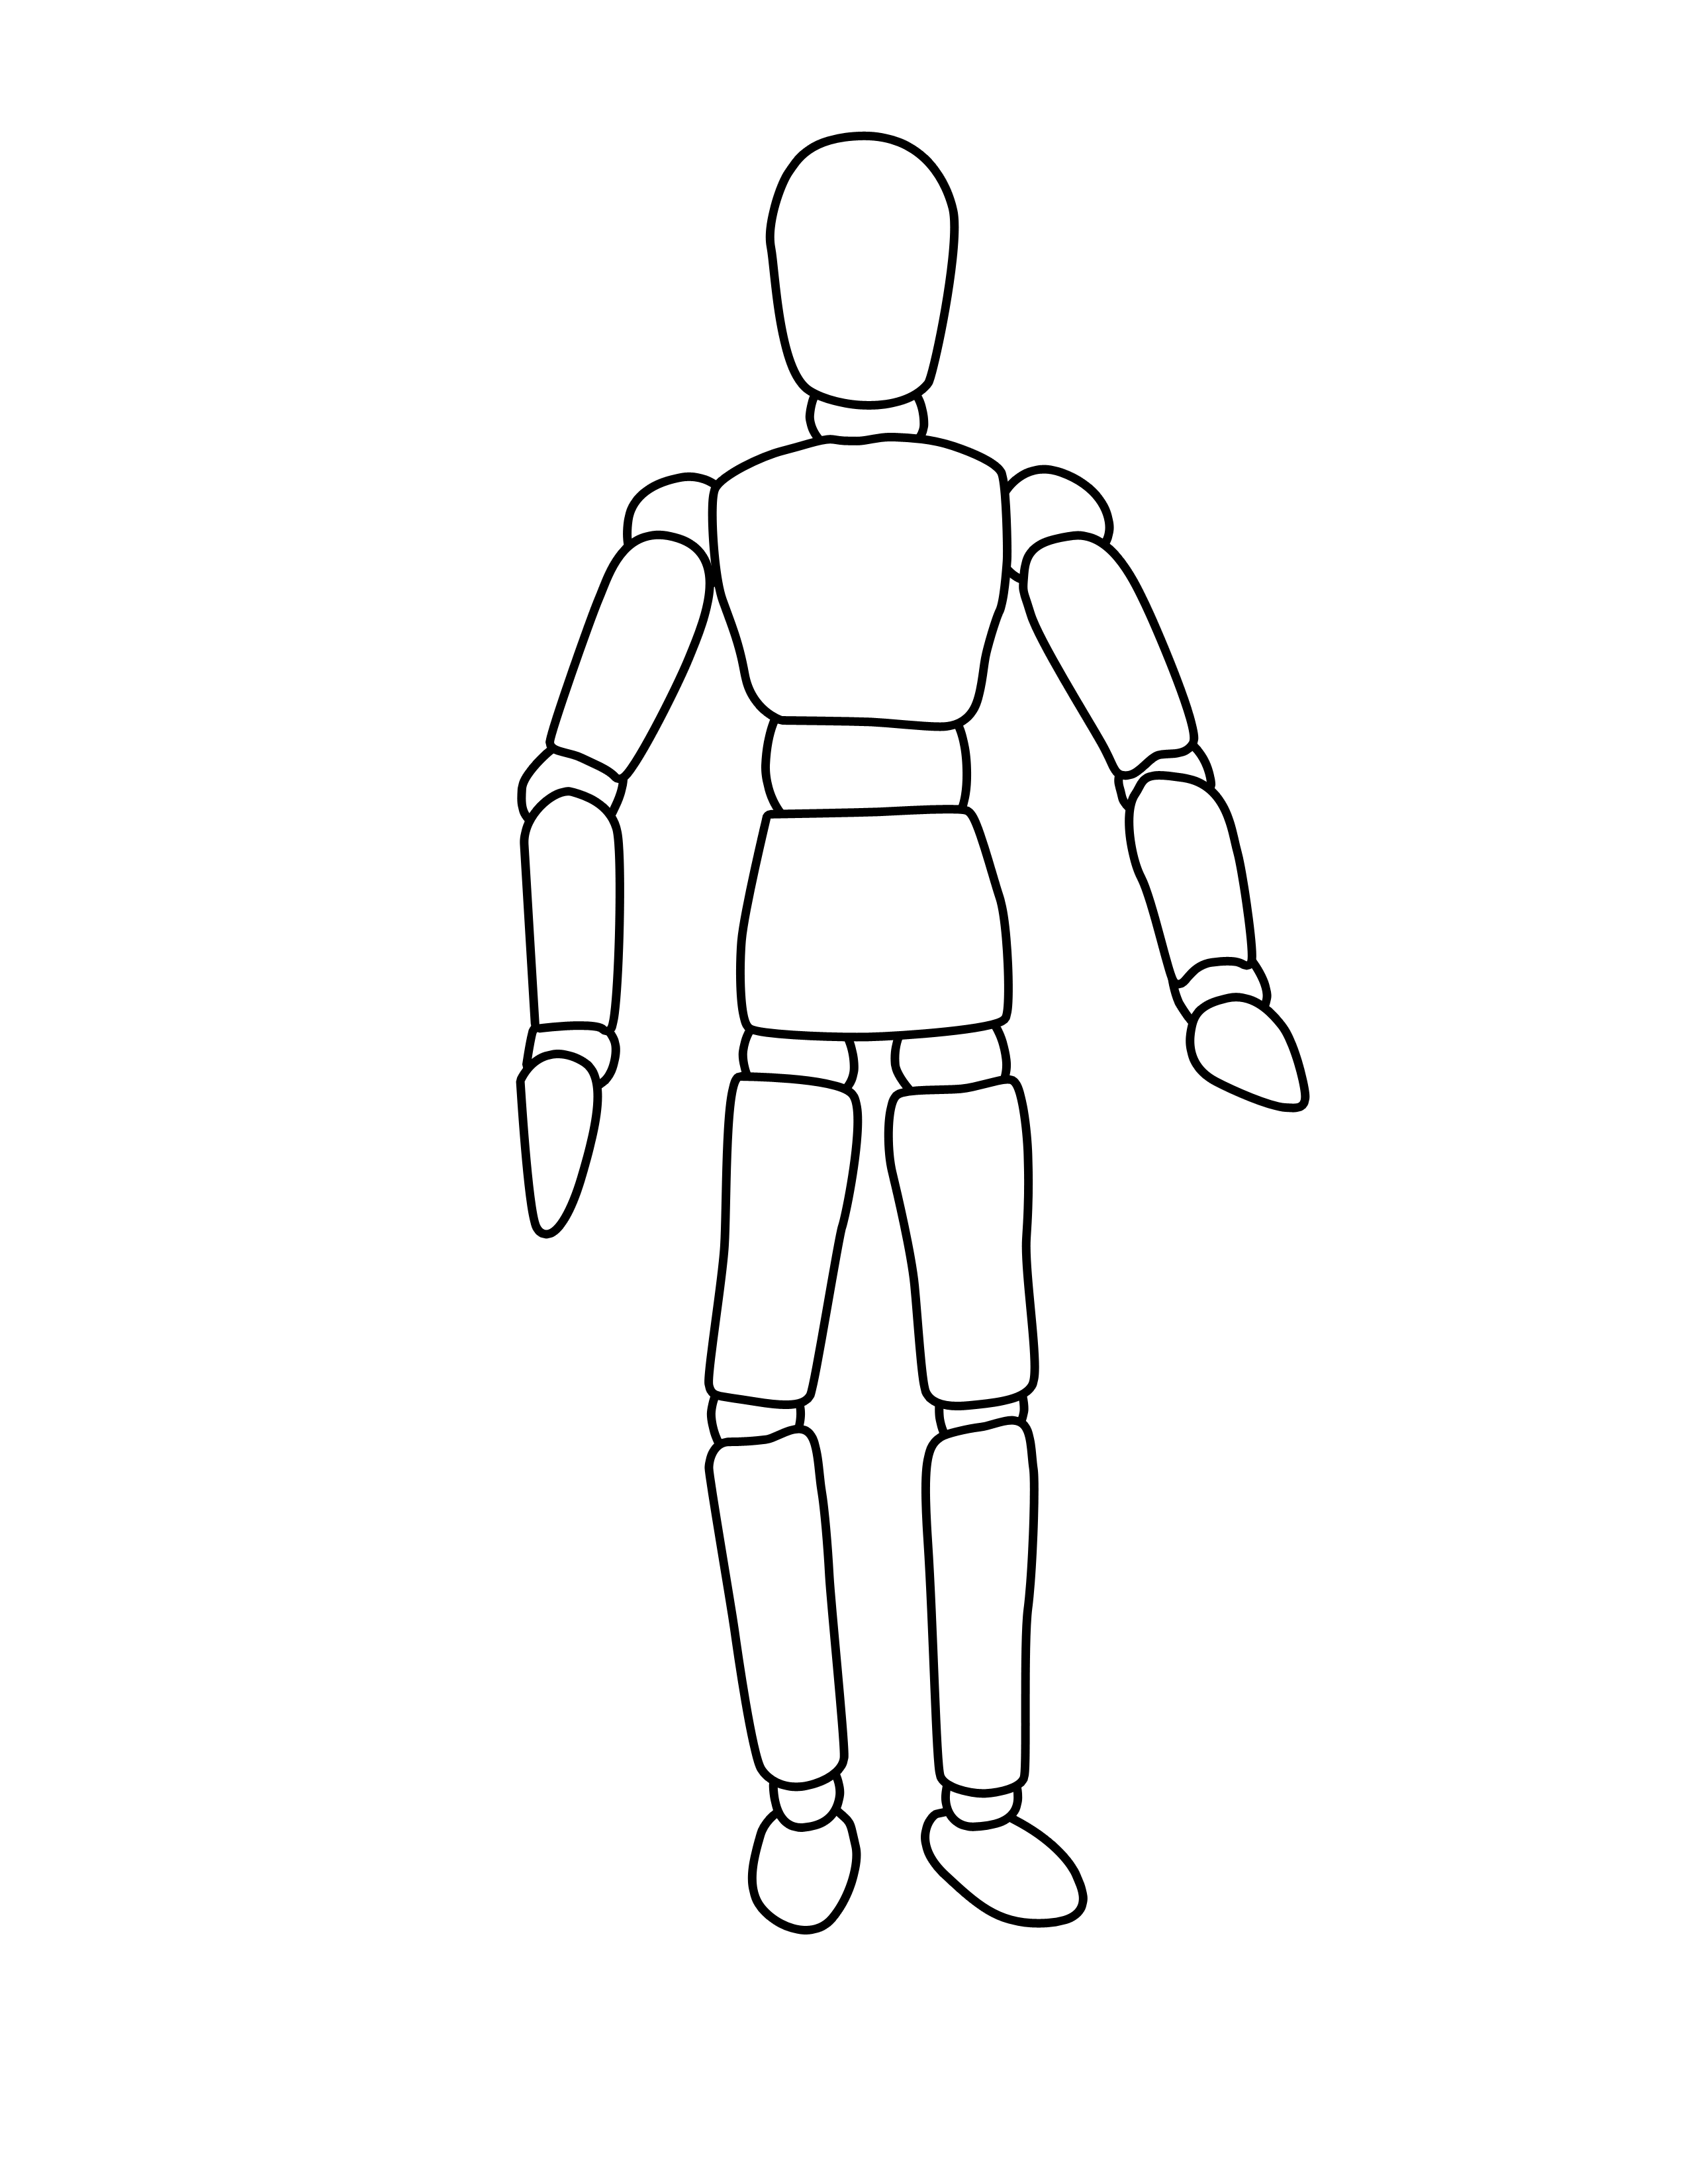 Free Human Body Outline Printable Download Free Clip Art Free Clip Art On Clipart Library